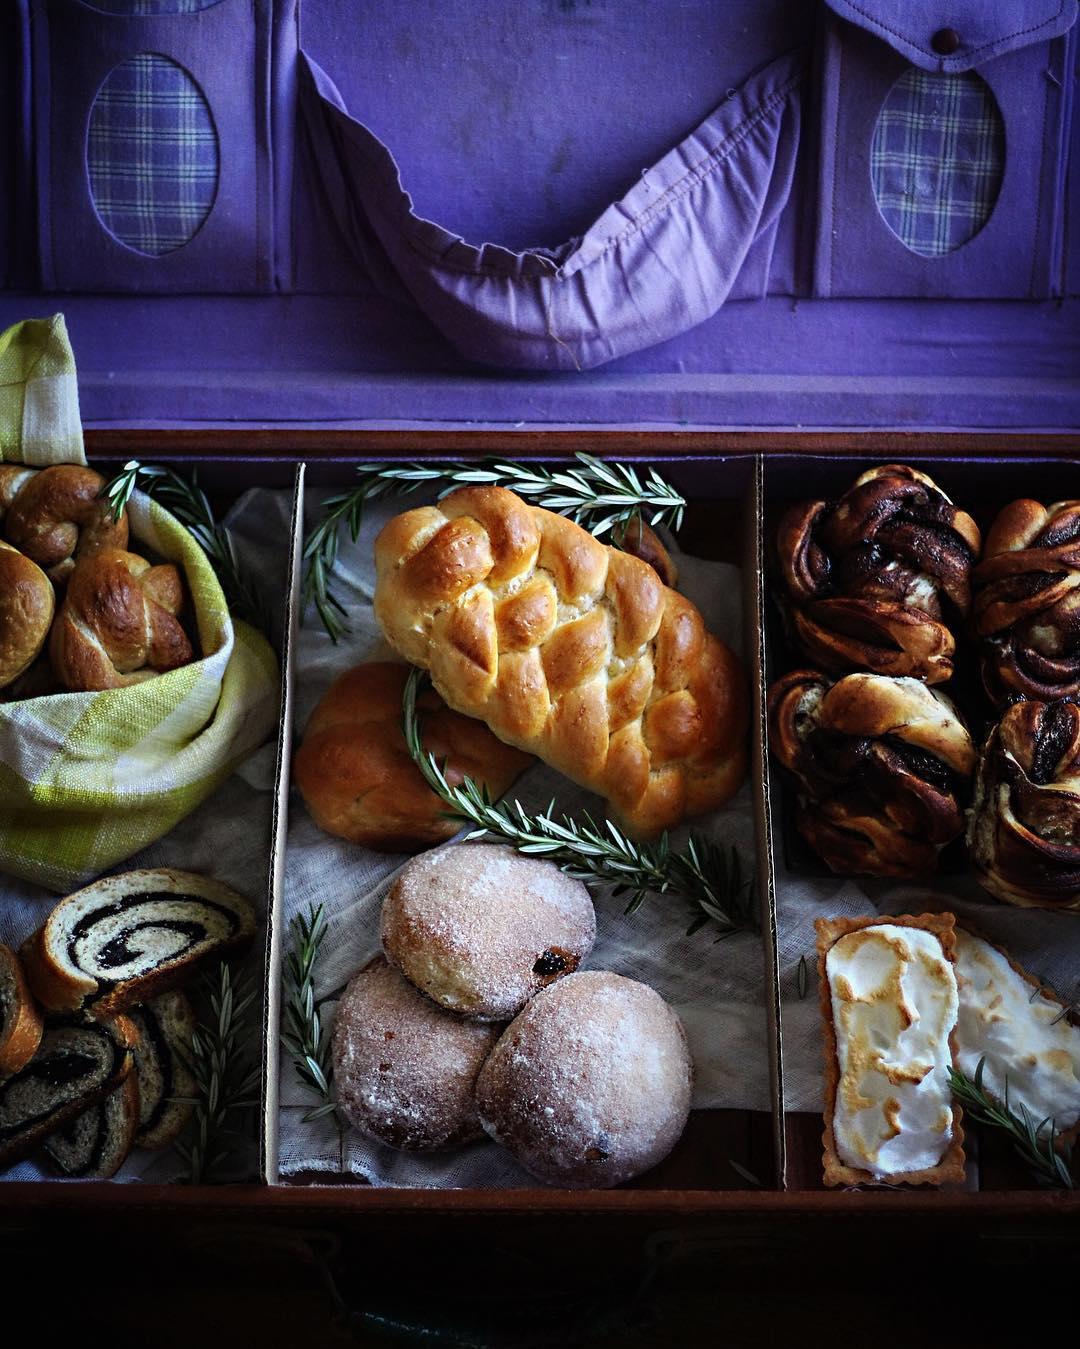 Jacob Kowalskis suitcase of baked goods inspired by the moviehellip